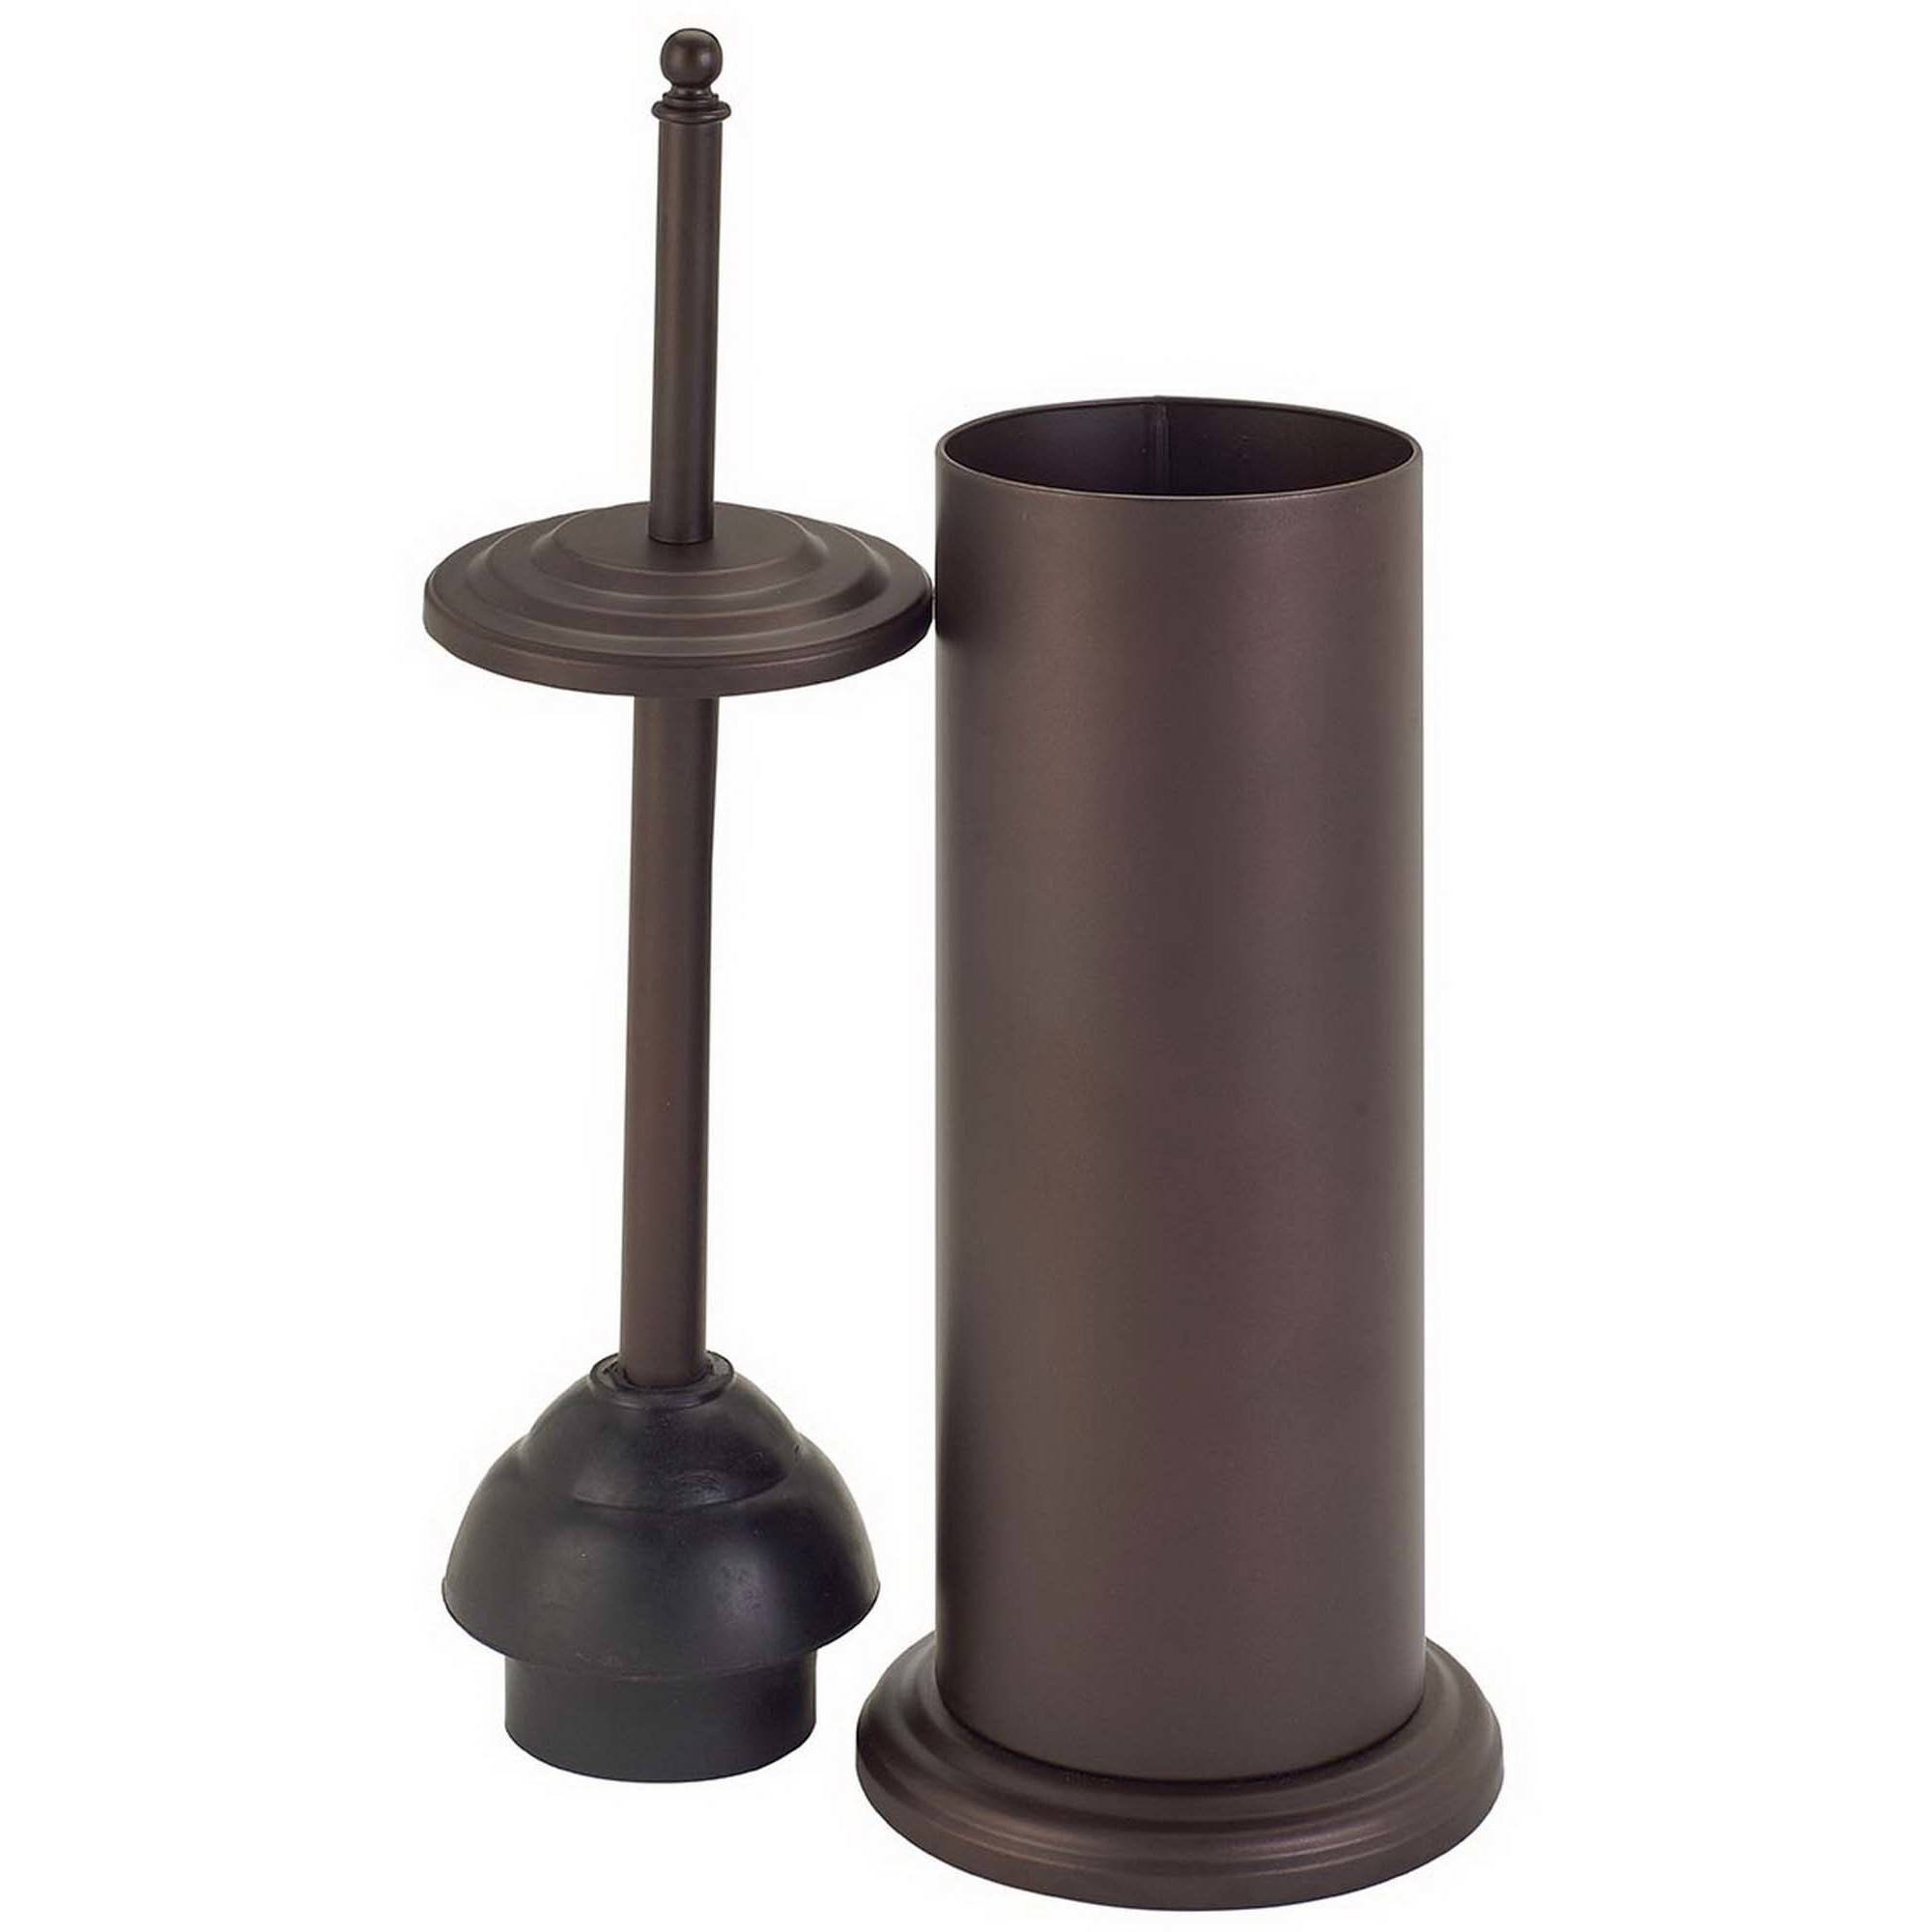 bath bliss toilet plunger with decorated rim oil stained bronze  - bath bliss toilet plunger with decorated rim oil stained bronze finish walmartcom